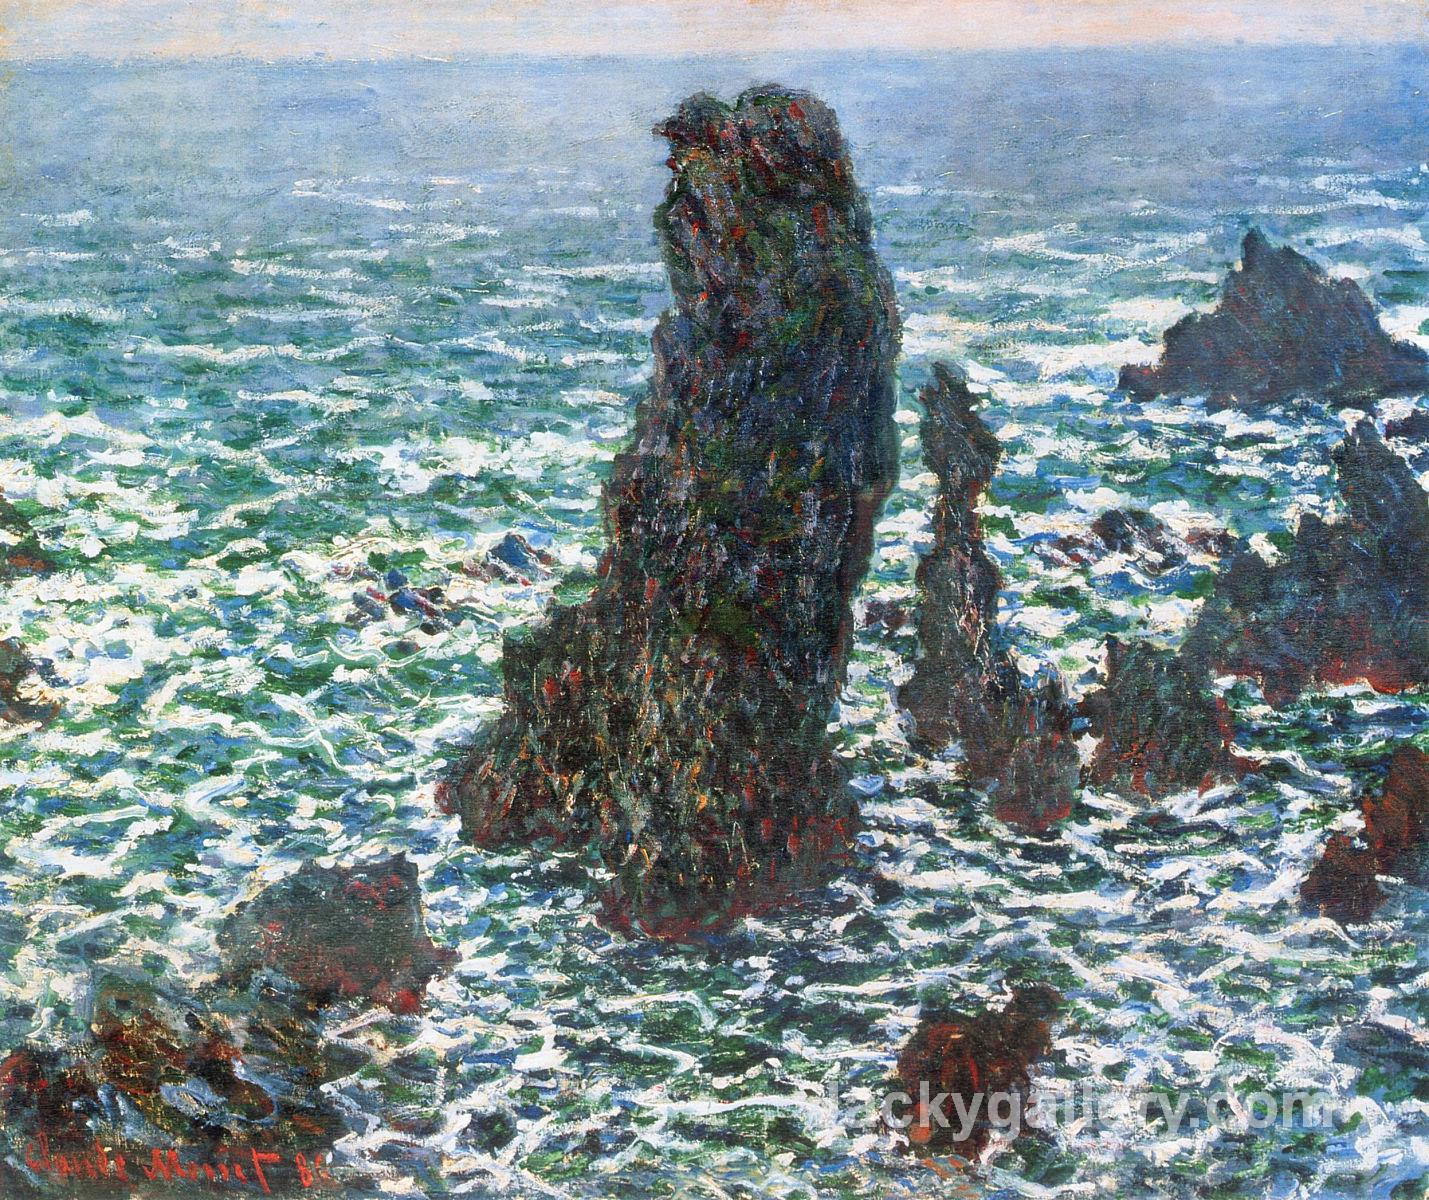 The Pyramids of Port Coton, Belle-Ile-en-Mer by Claude Monet paintings reproduction